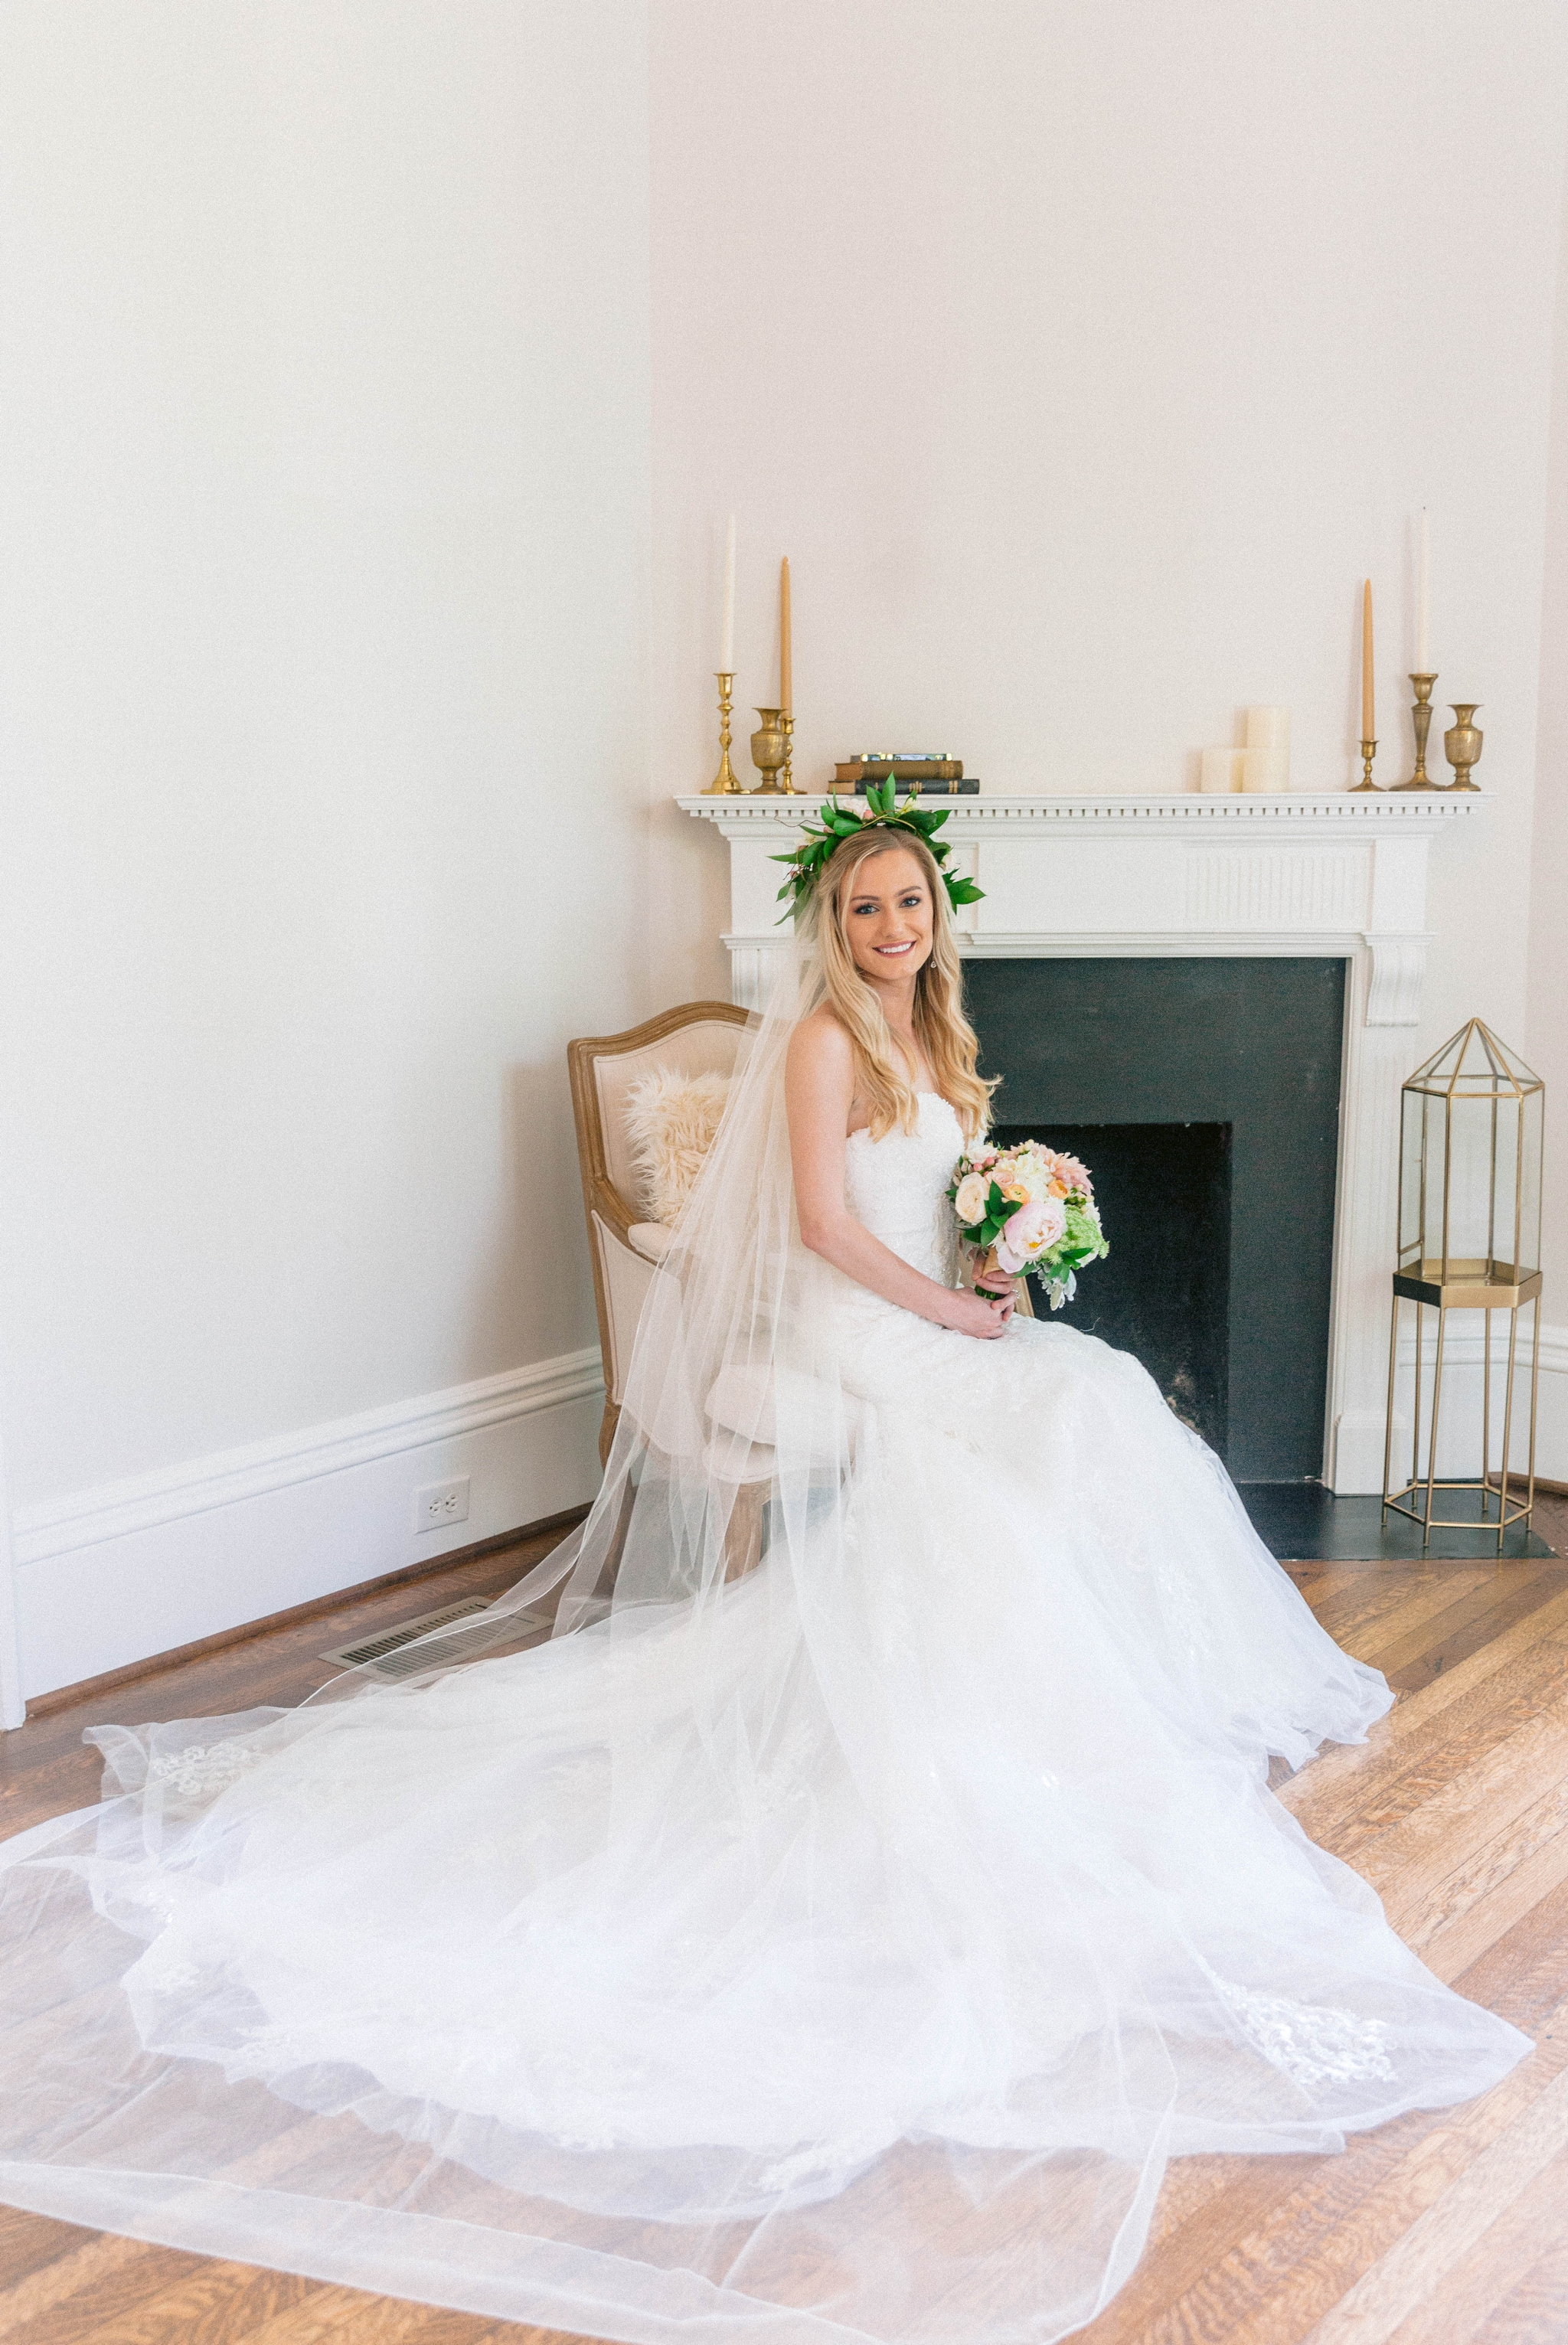 Veil shot - Indoor Bridal Portraits in an all white room at a luxury estate with natural light before the ceremony - Bride is wearing a Hawaiian Flower Crown and a cathedral veil in a Wedding Gown by Stella York sitting on an antique vintage chair in front of a decorated fireplace  - Honolulu Oahu Hawaii Wedding Photographer - Johanna Dye Photography